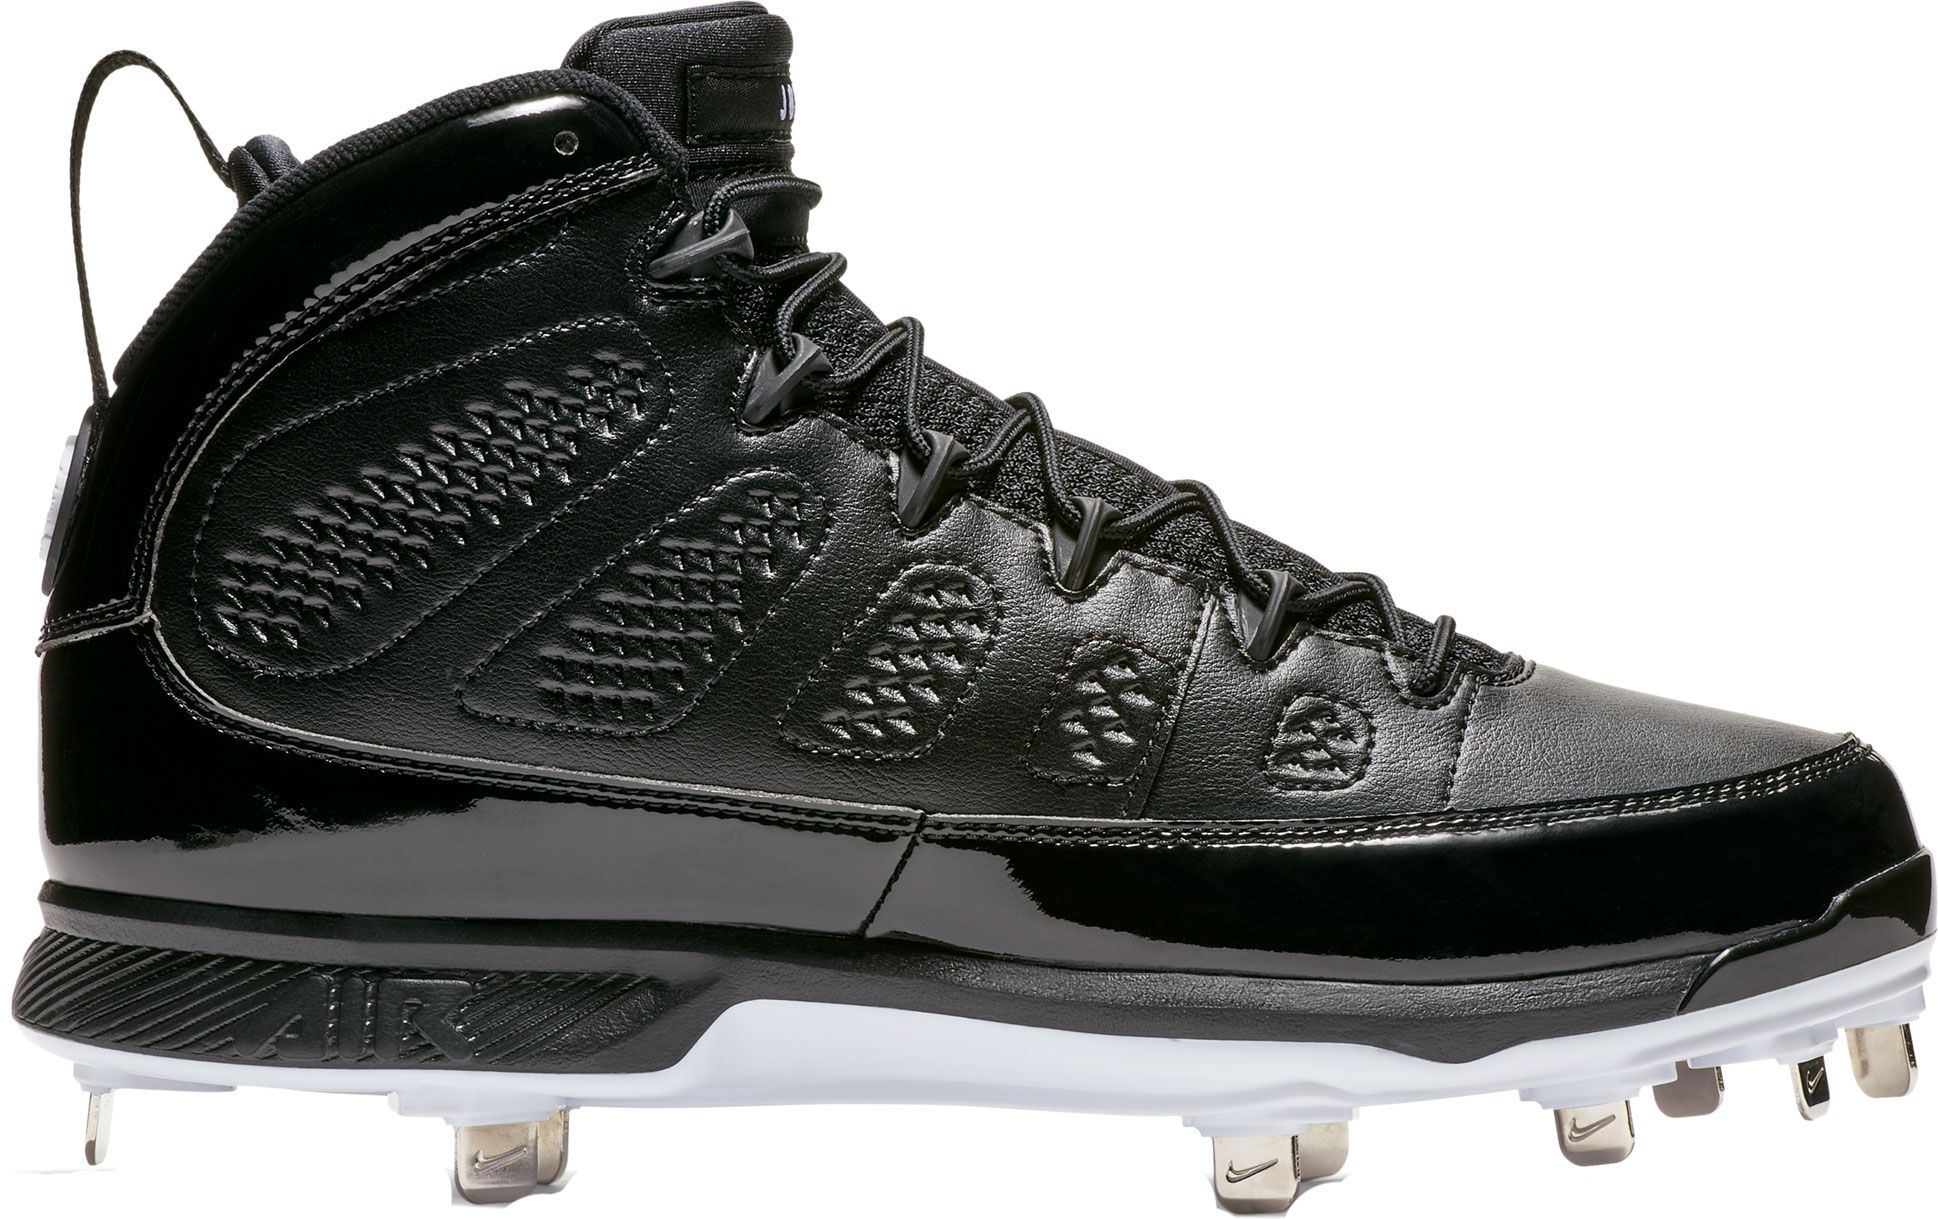 Jordan Men's Ix Retro Mid Metal Baseball Cleats by Jordan